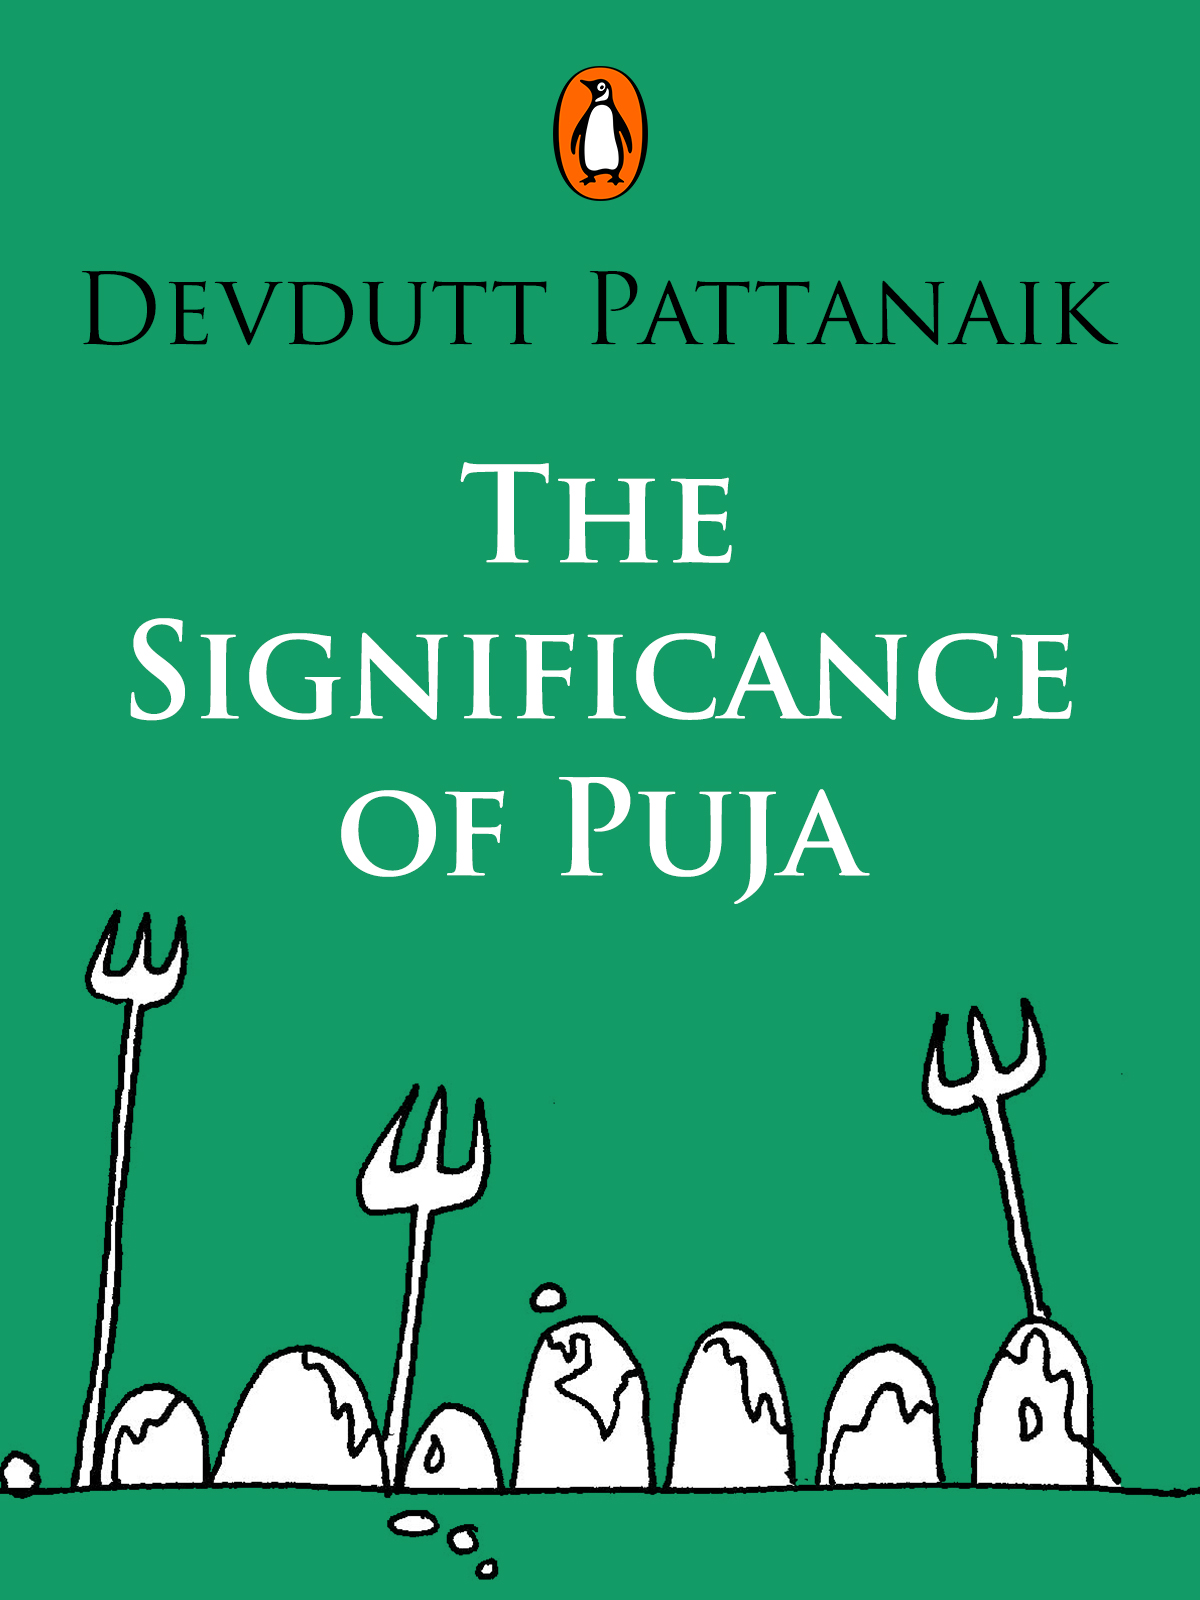 The Significance of Puja